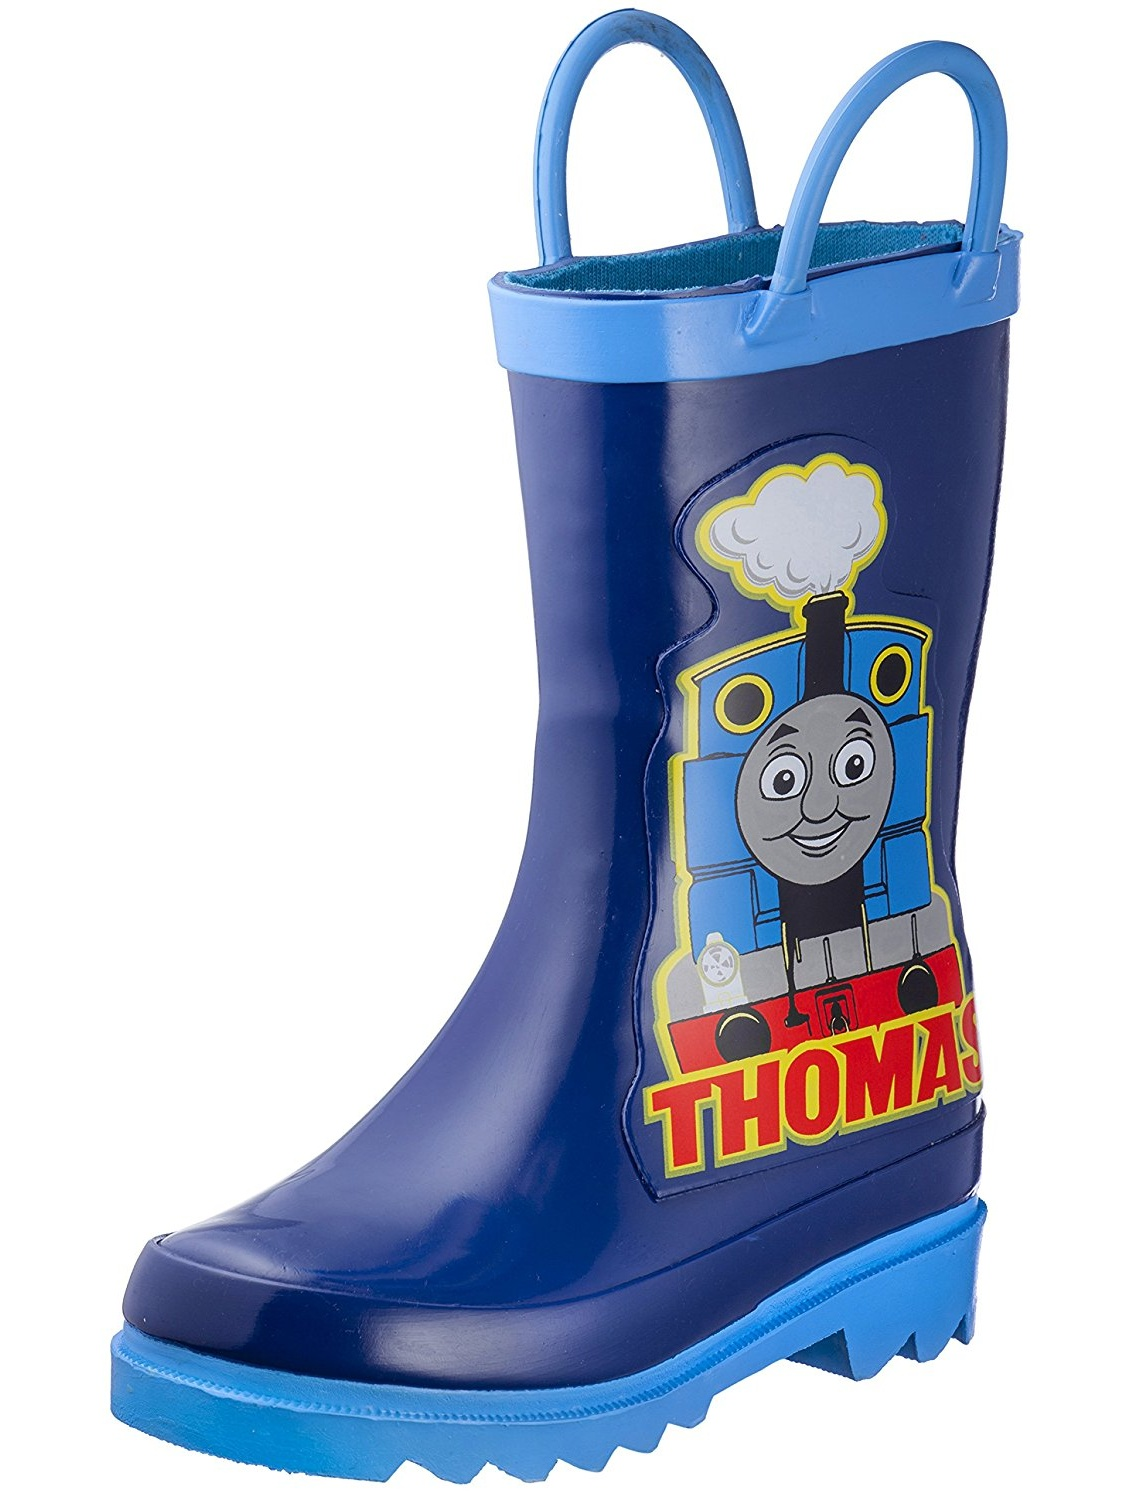 Thomas Amp Friends Thomas The Tank Engine Boy S Blue Rain Boots Toddler Little Kid Walmart Com Walmart Com